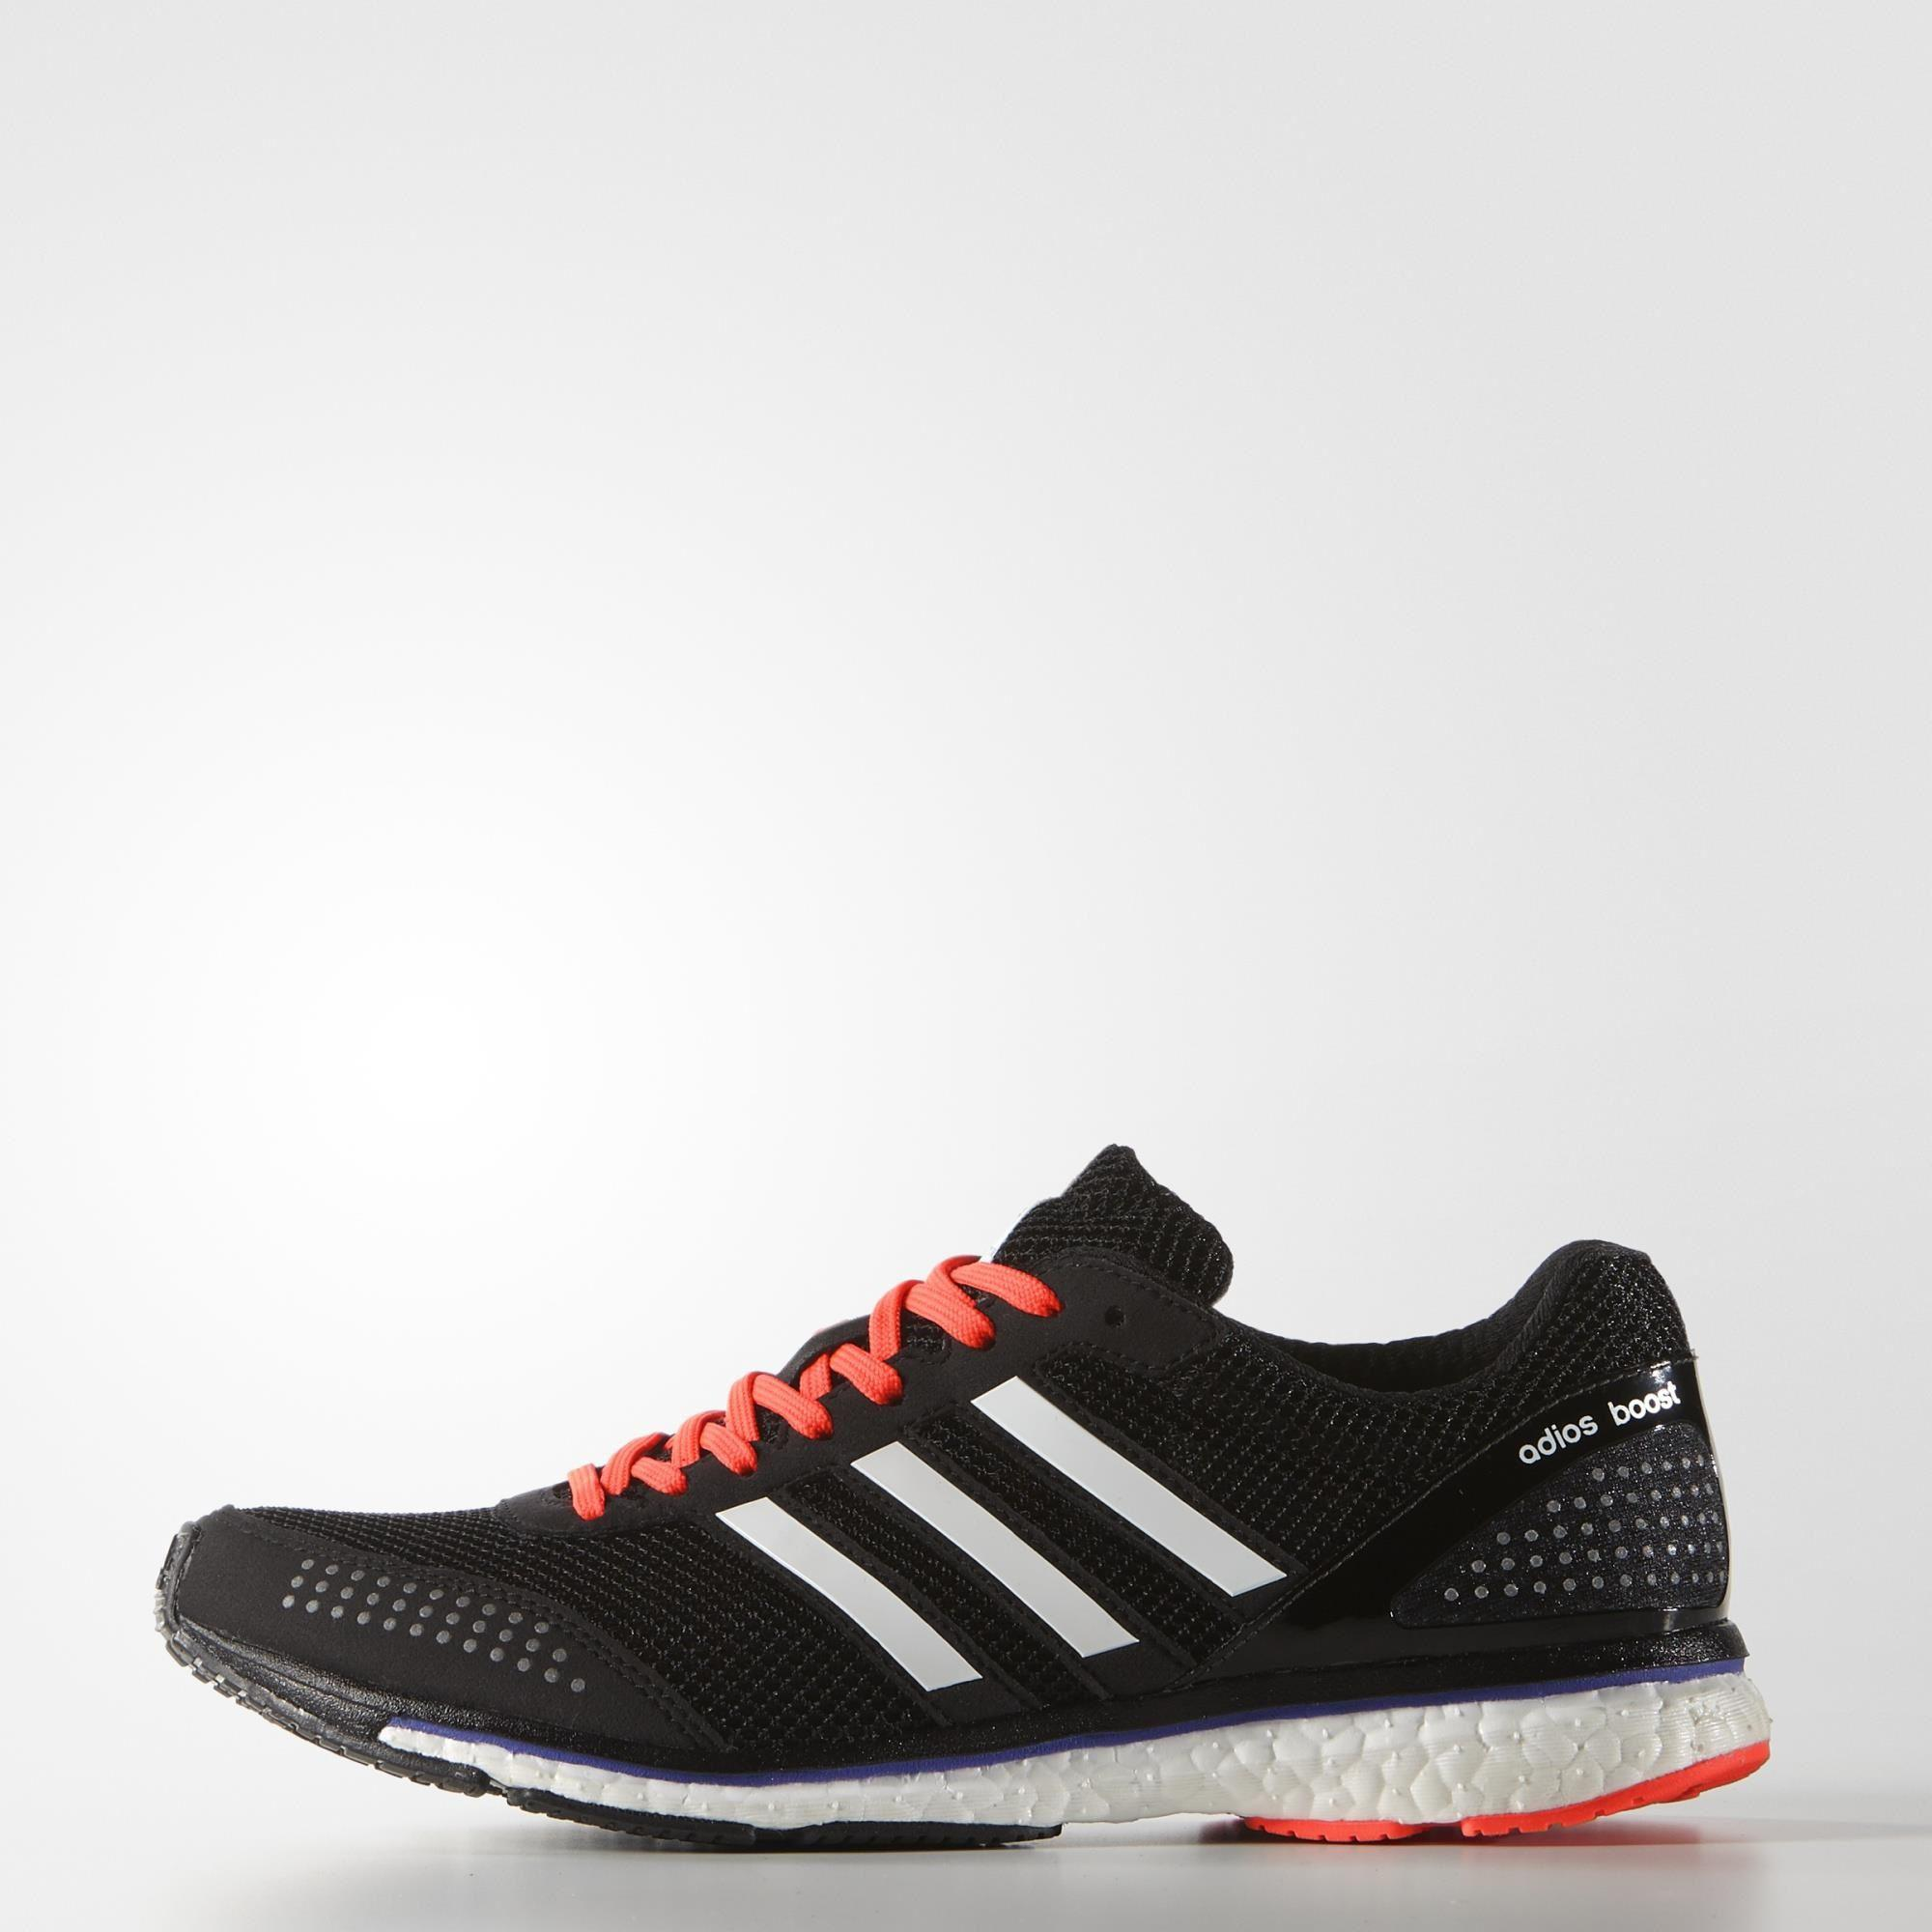 Adidas Womens Adizero Adios Boost 2 0 Running Shoes